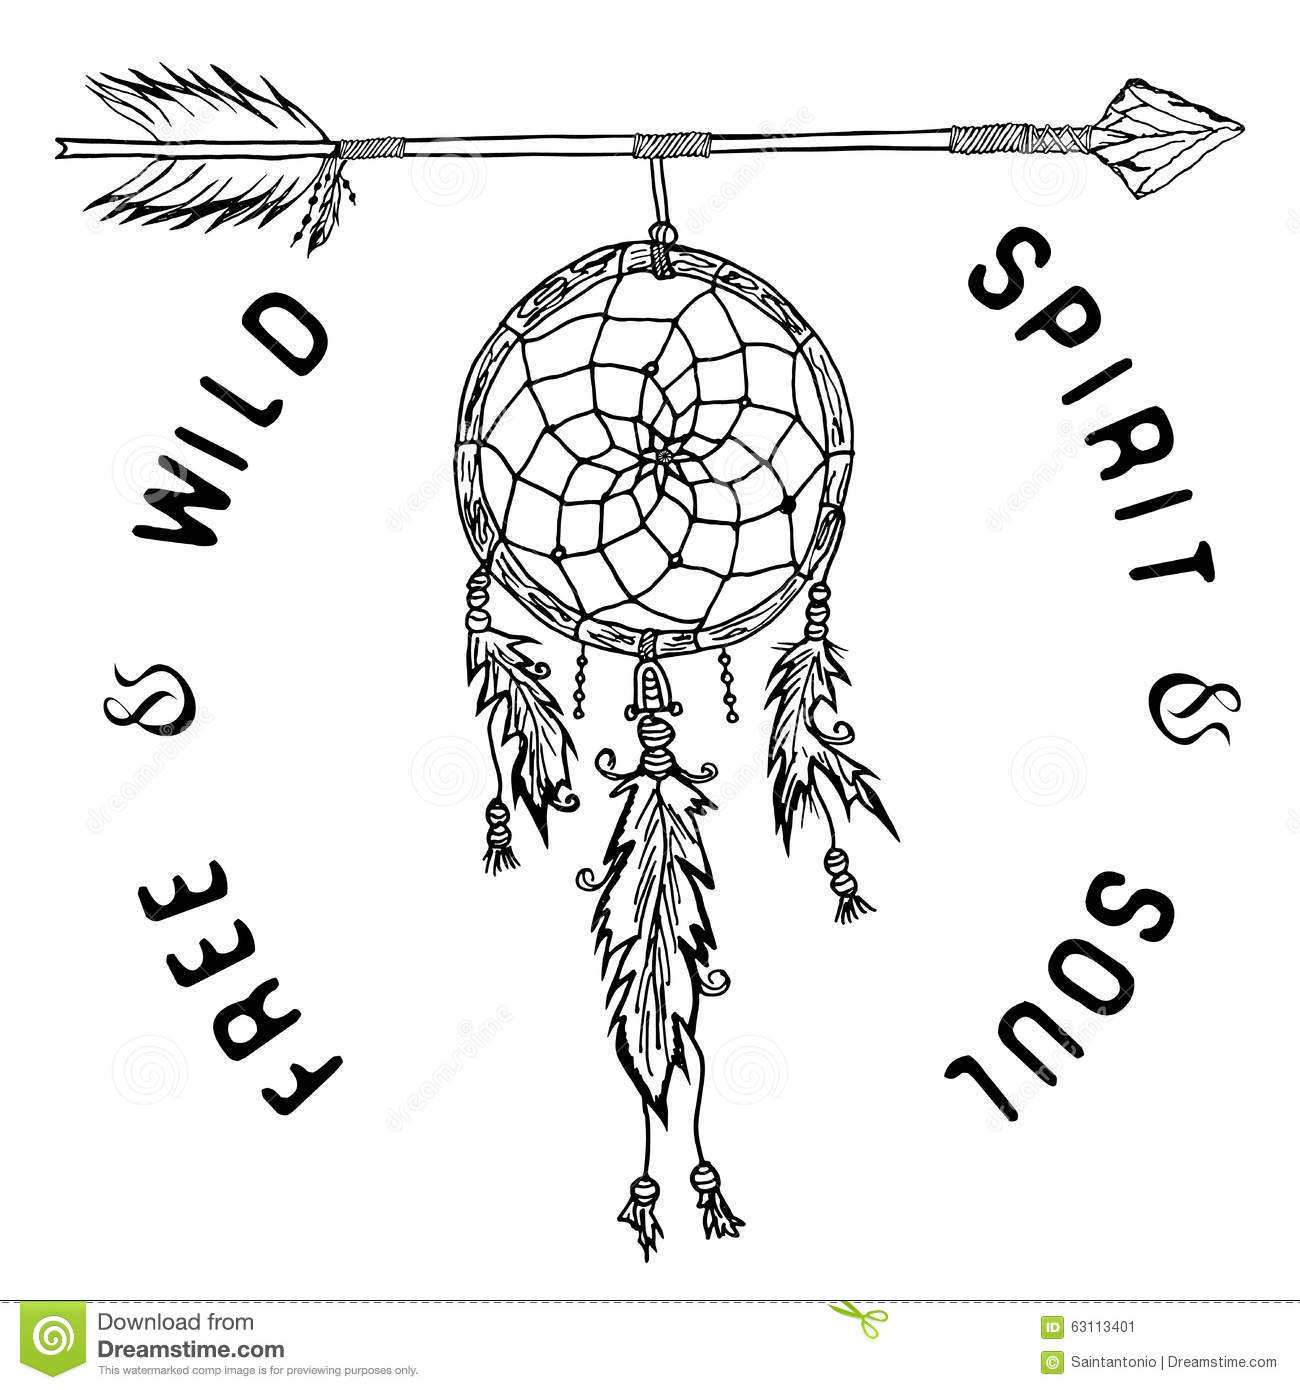 Dream Catcher And Arrow, Tribal Legend In Indian Style